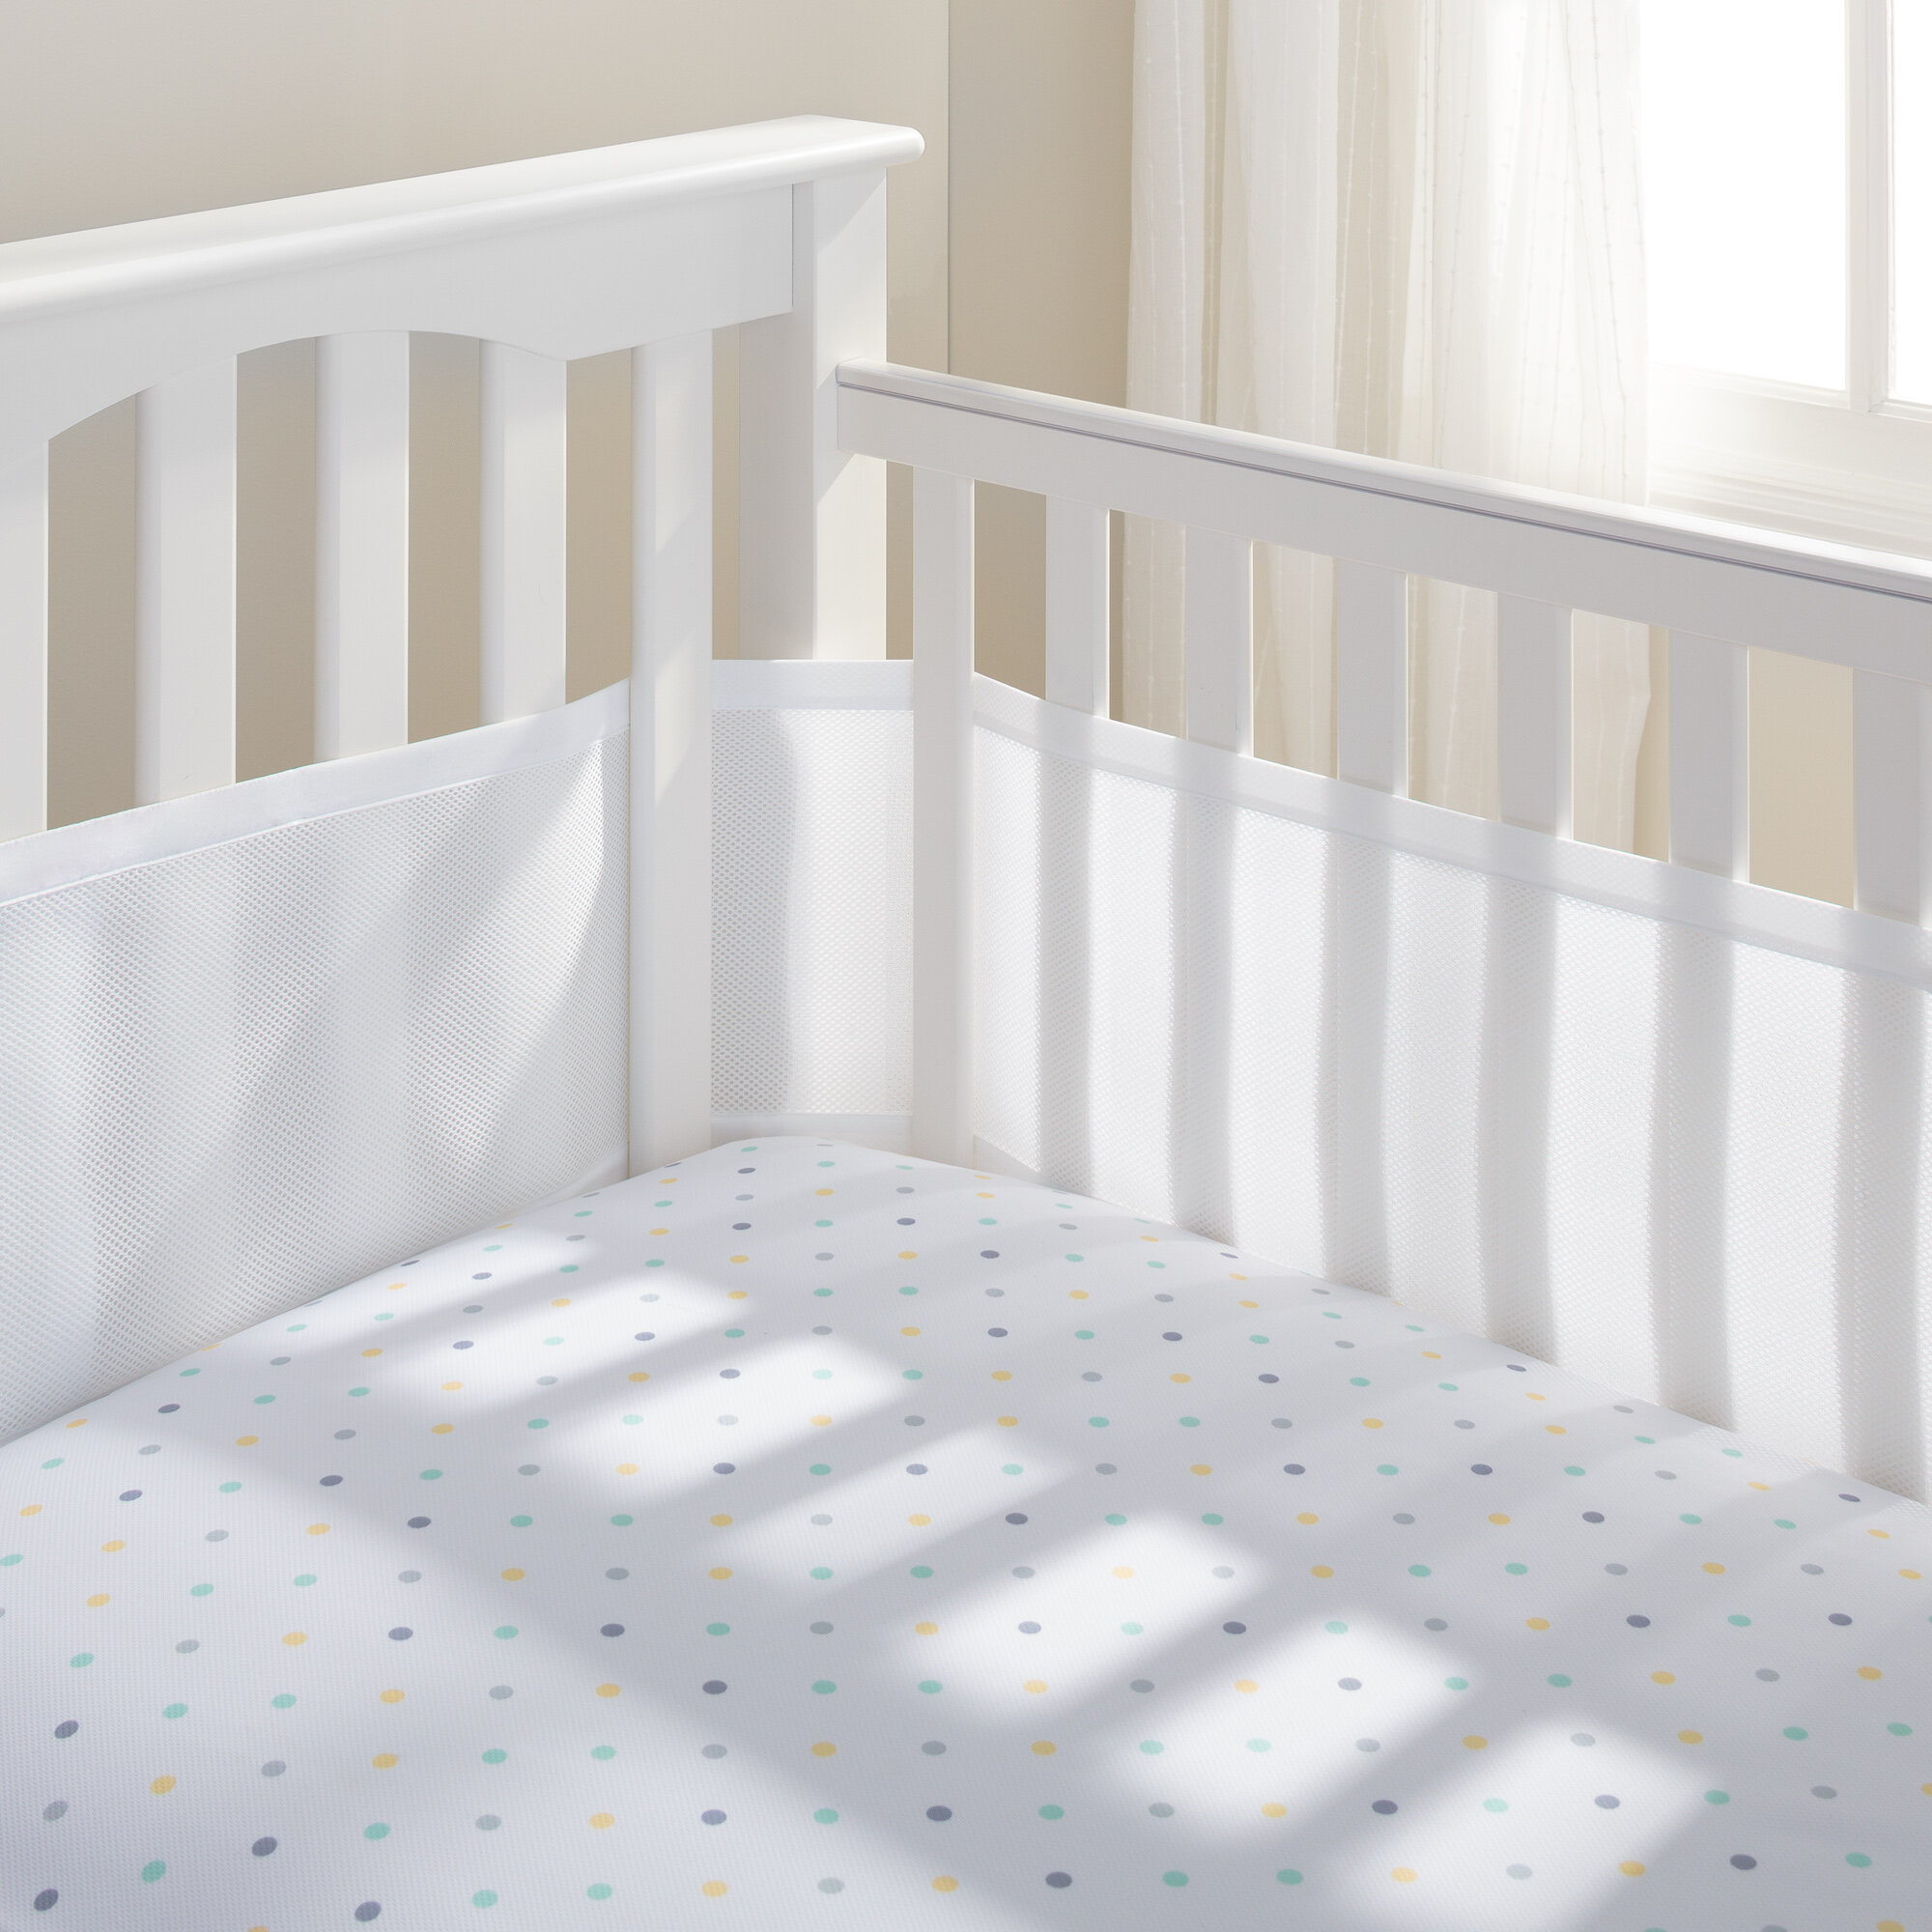 Crib Bumper Pattern Simple Inspiration Design